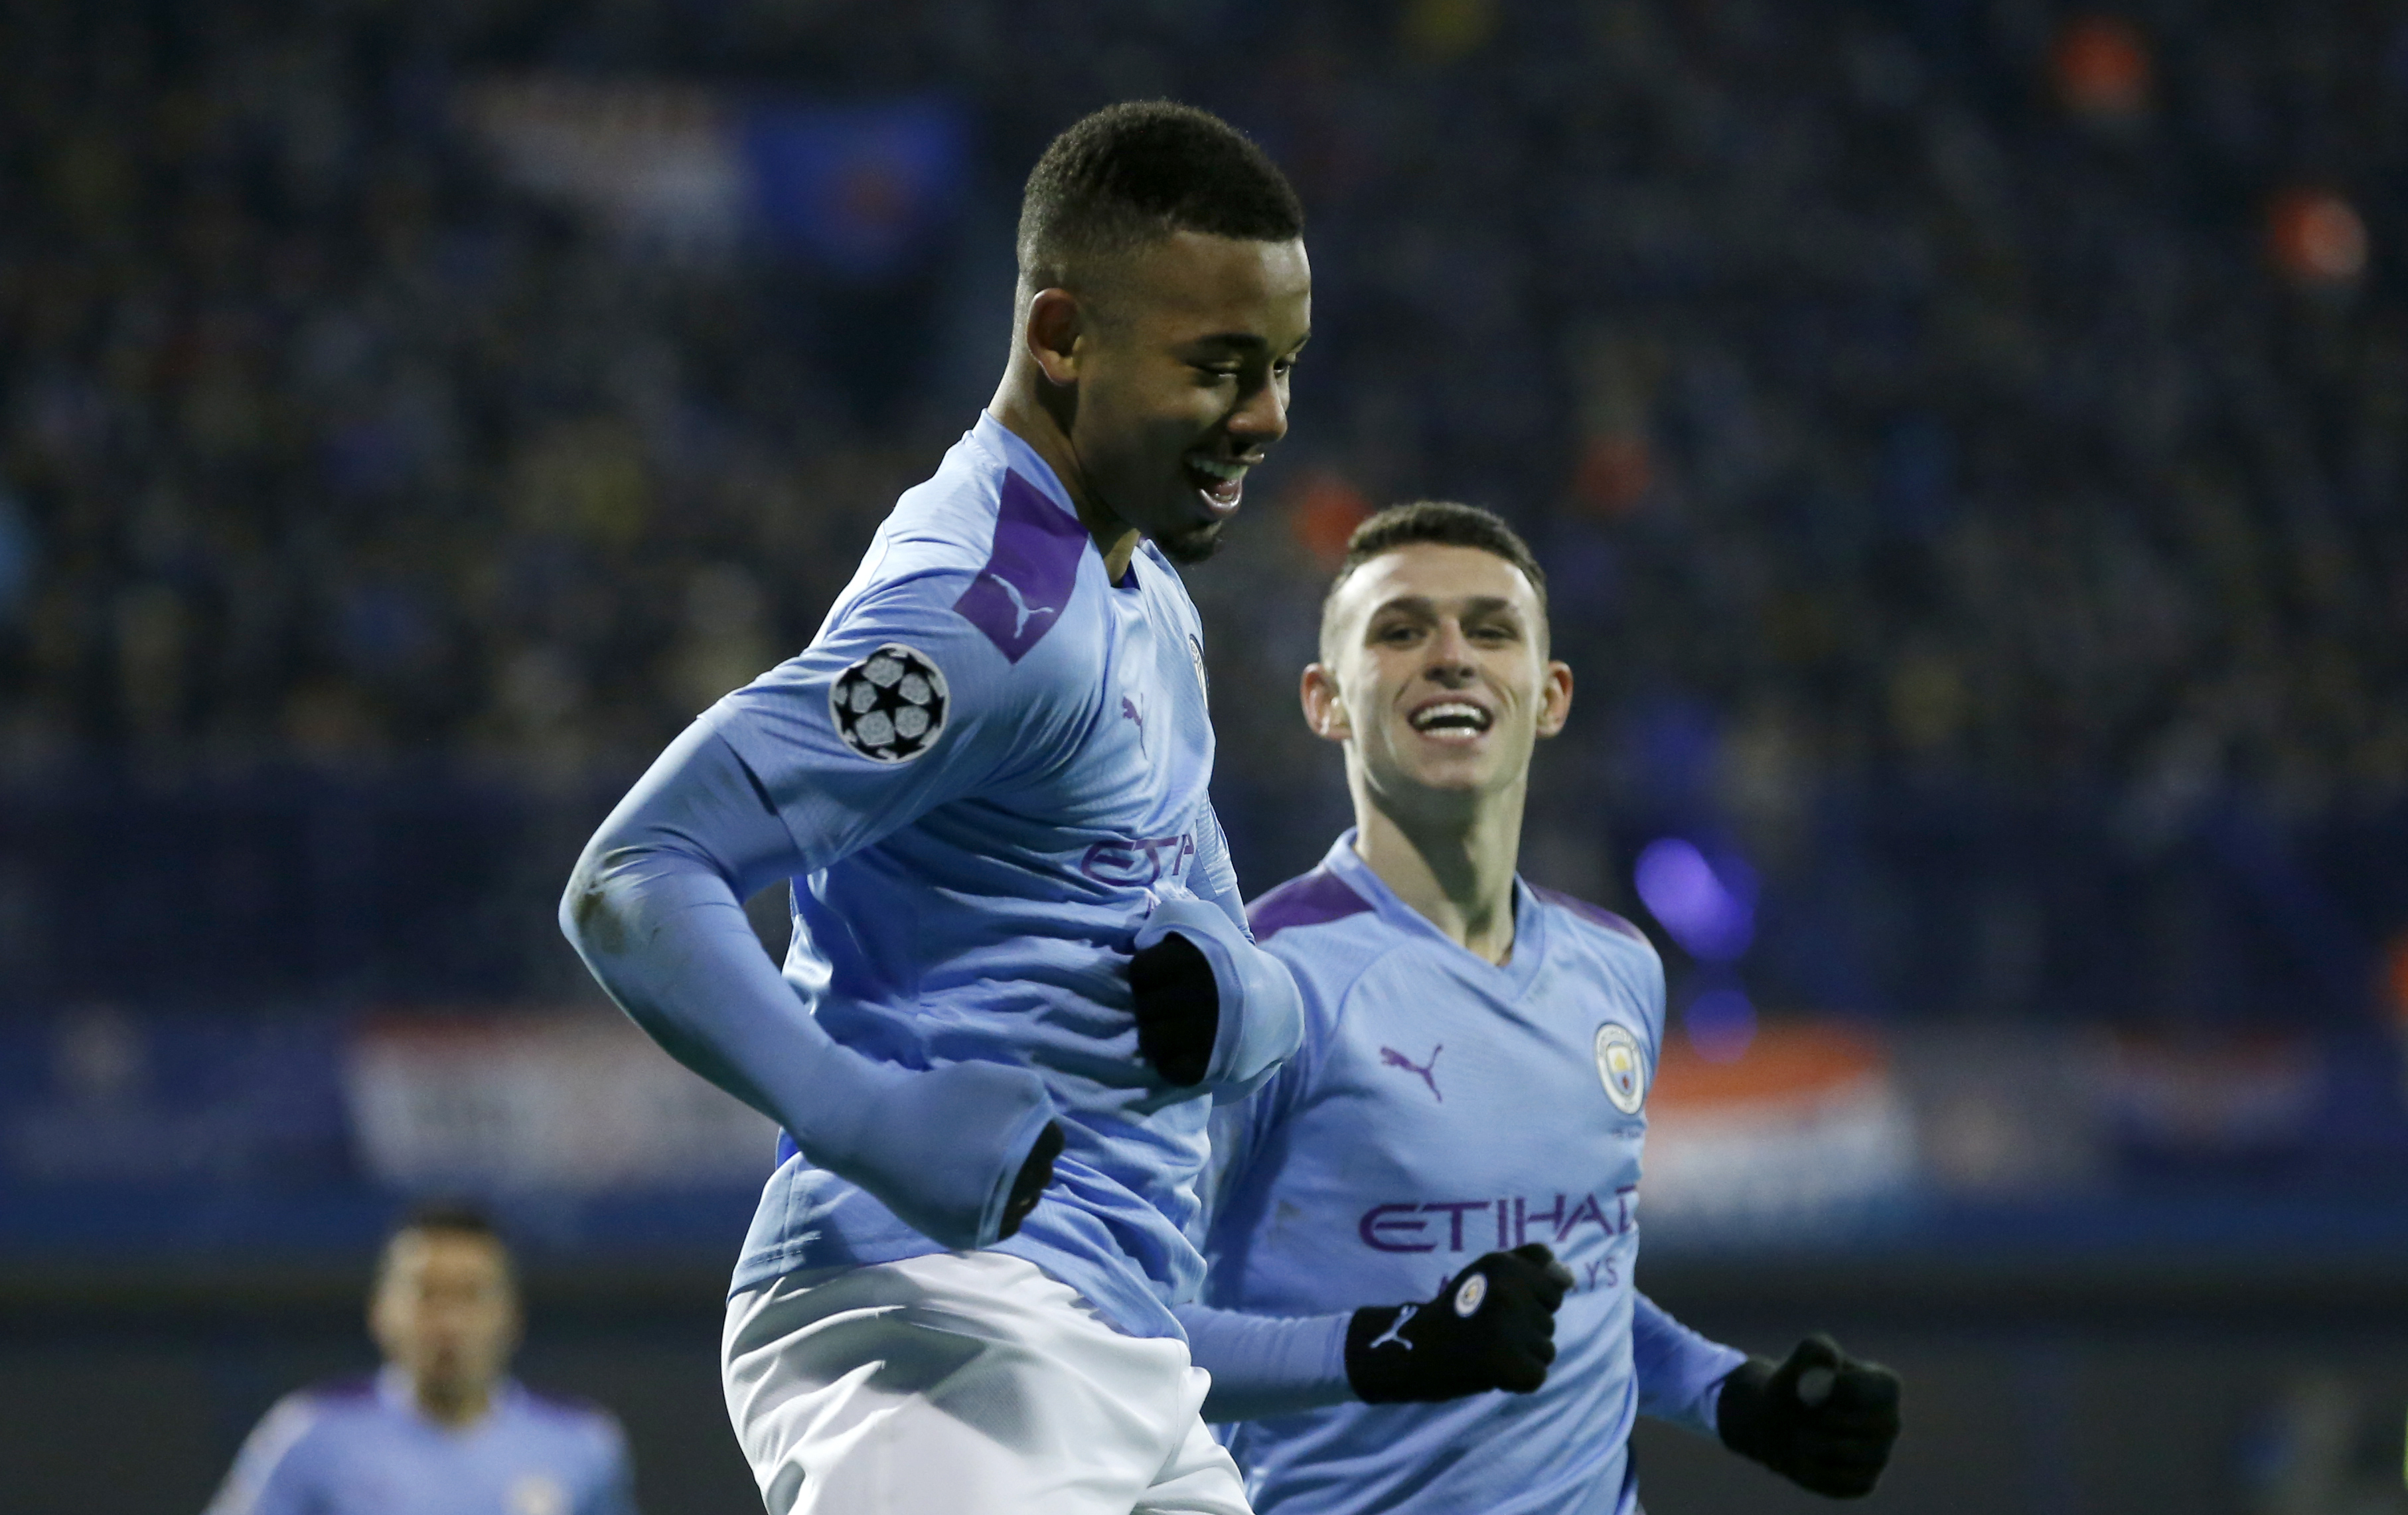 Jesus nets hat trick as Man City eliminates Dinamo in CL